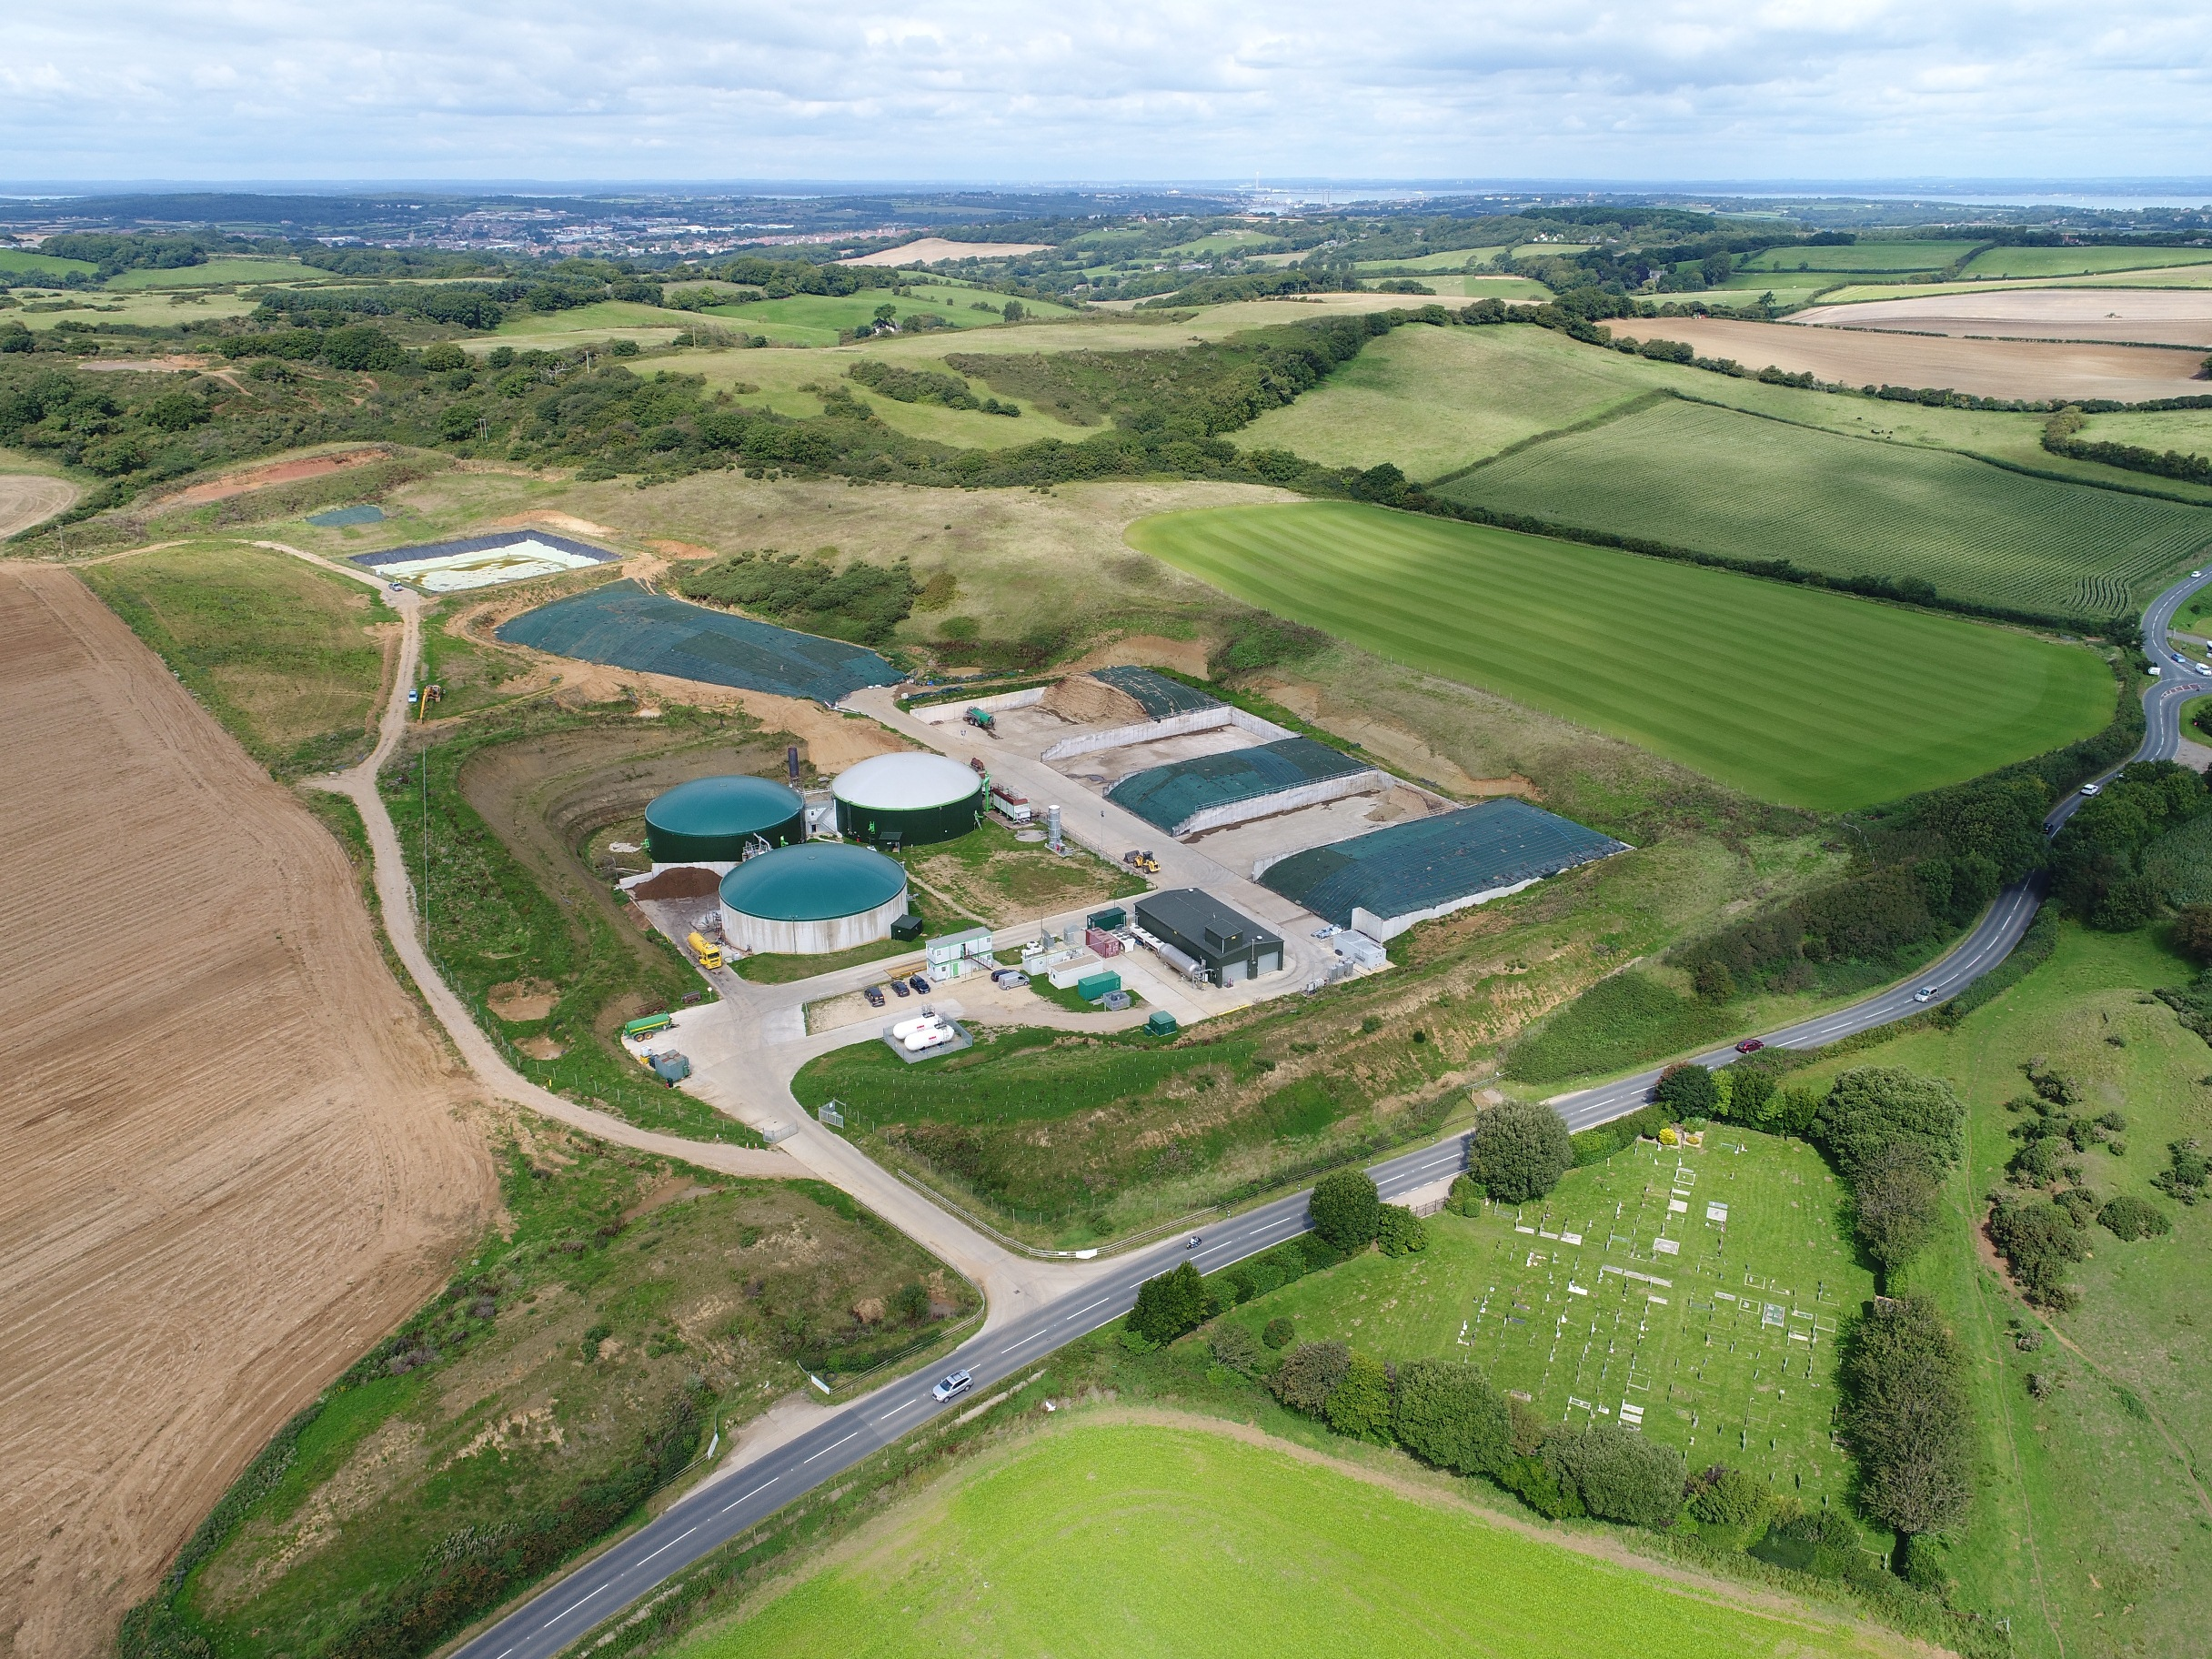 MEMBER'S PRESS RELEASE: Arreton AD Facility Sold To Foresight Group